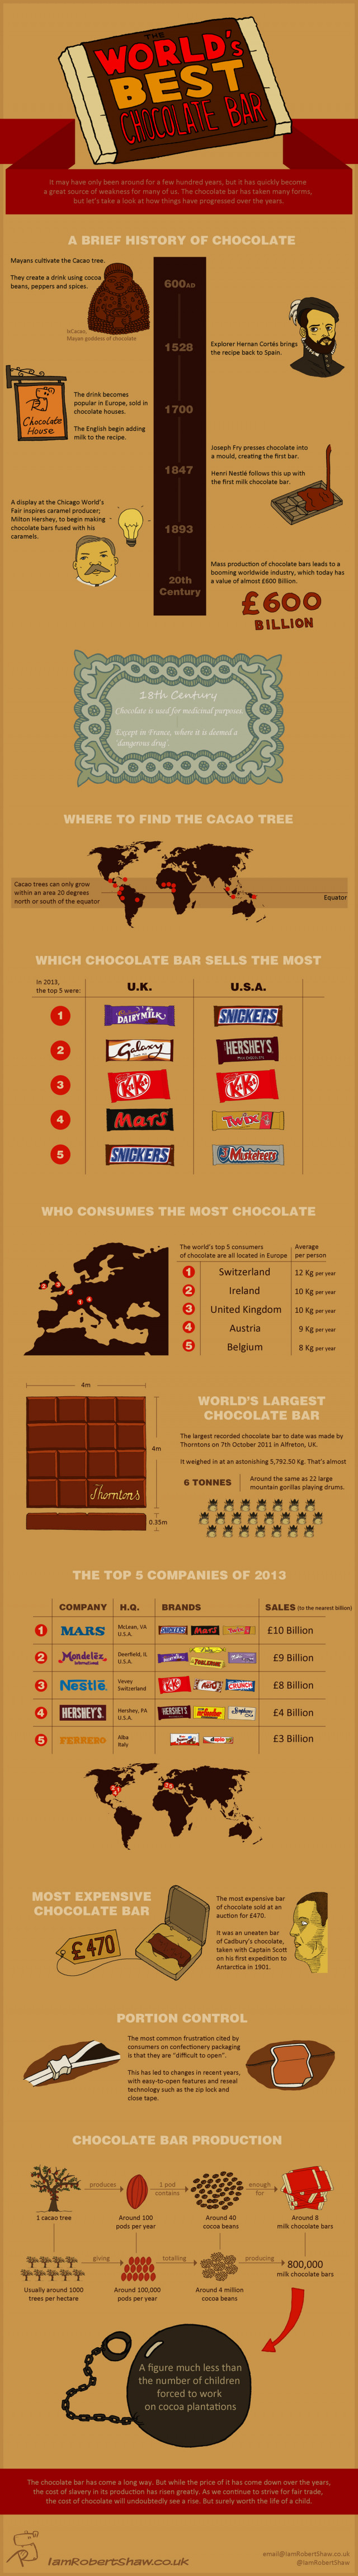 Worksheet History Of Chocolate Bars the history of chocolate bar infographic world